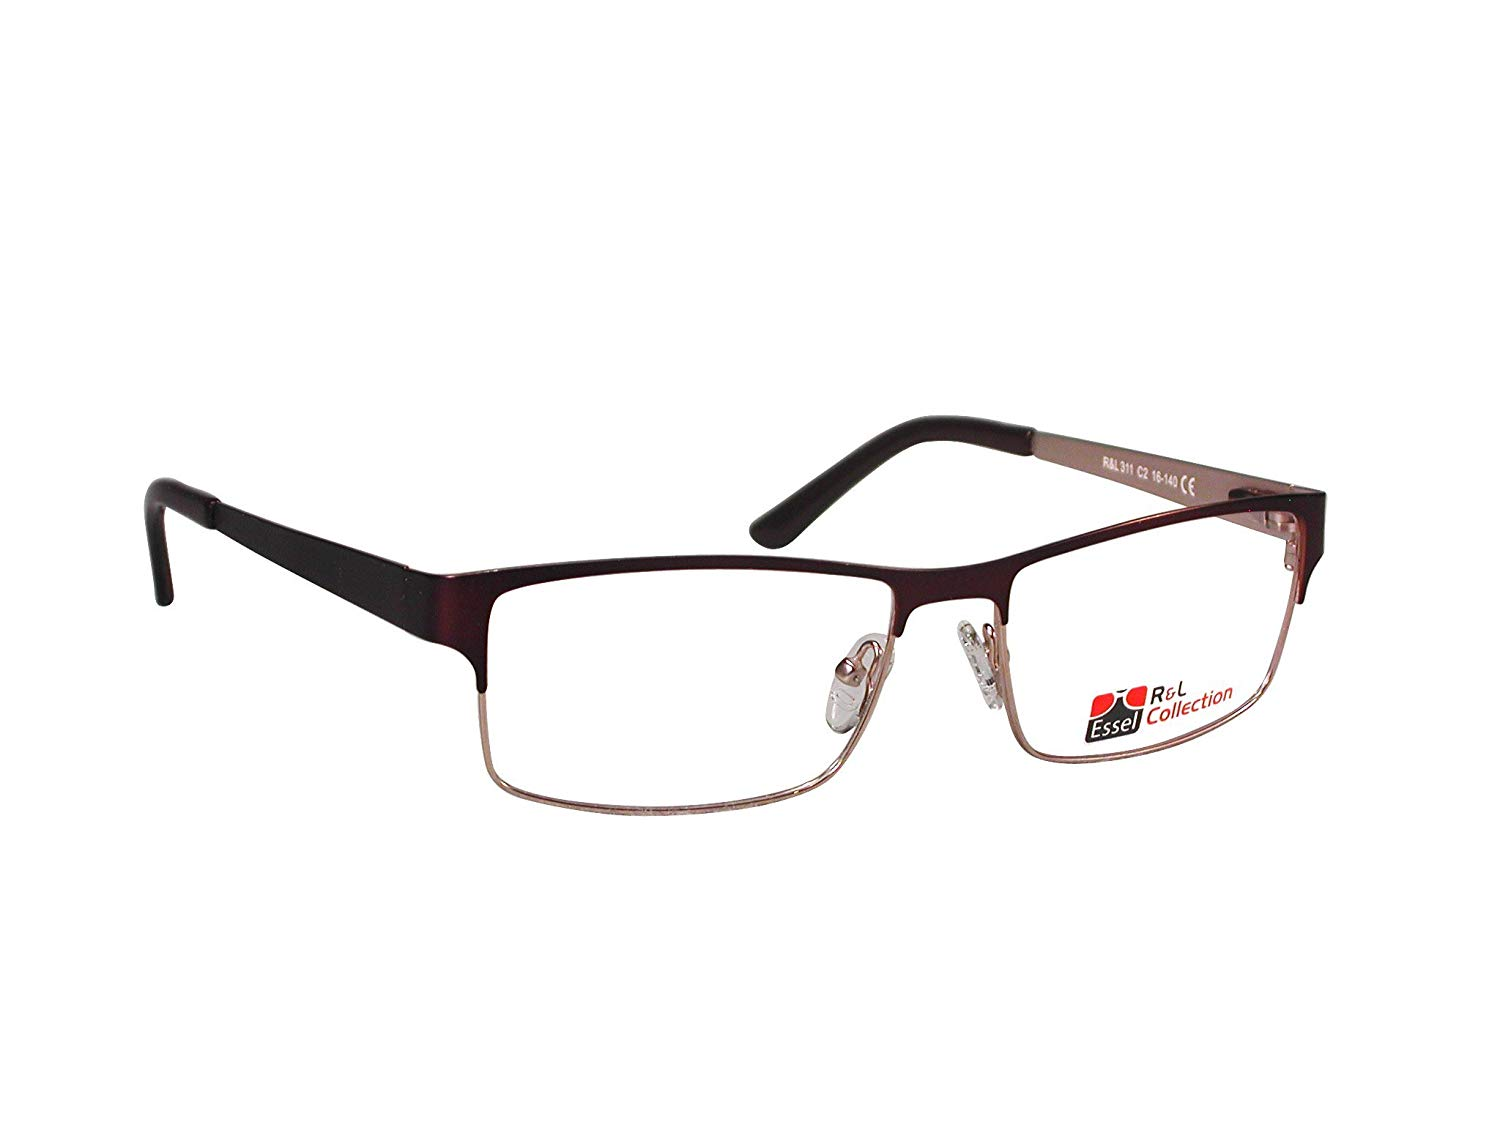 557f8e22bc Designer EyeGlasses Stylish Full Rim Rectangular Metal Frame for Non- Prescription or Prescription Clear Lens